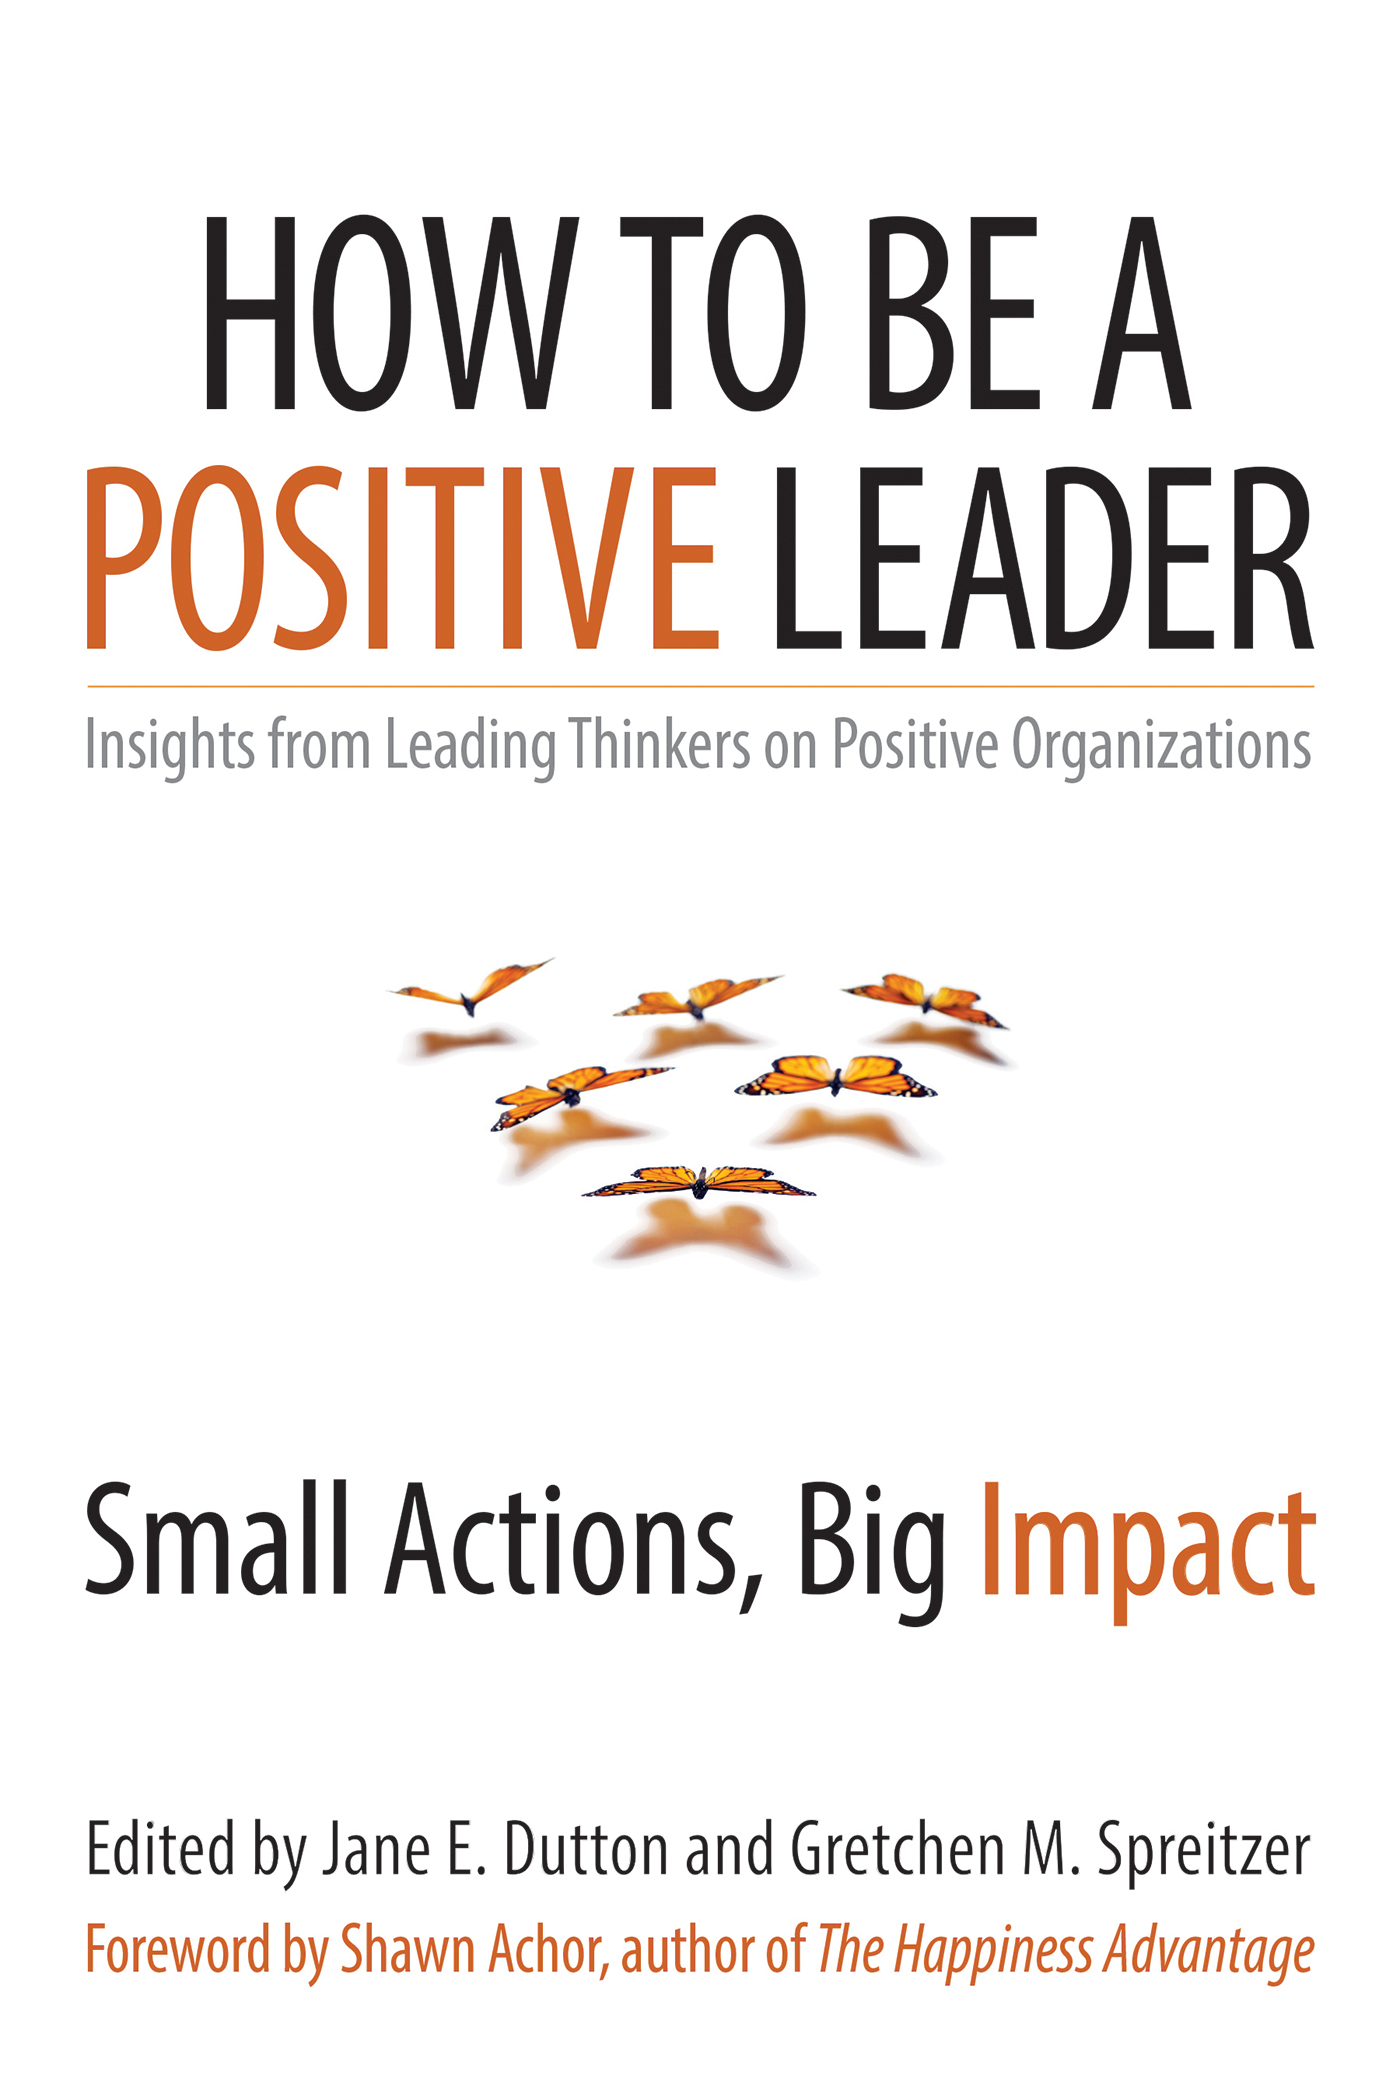 How to Be a Positive Leader Small Actions, Big Impact